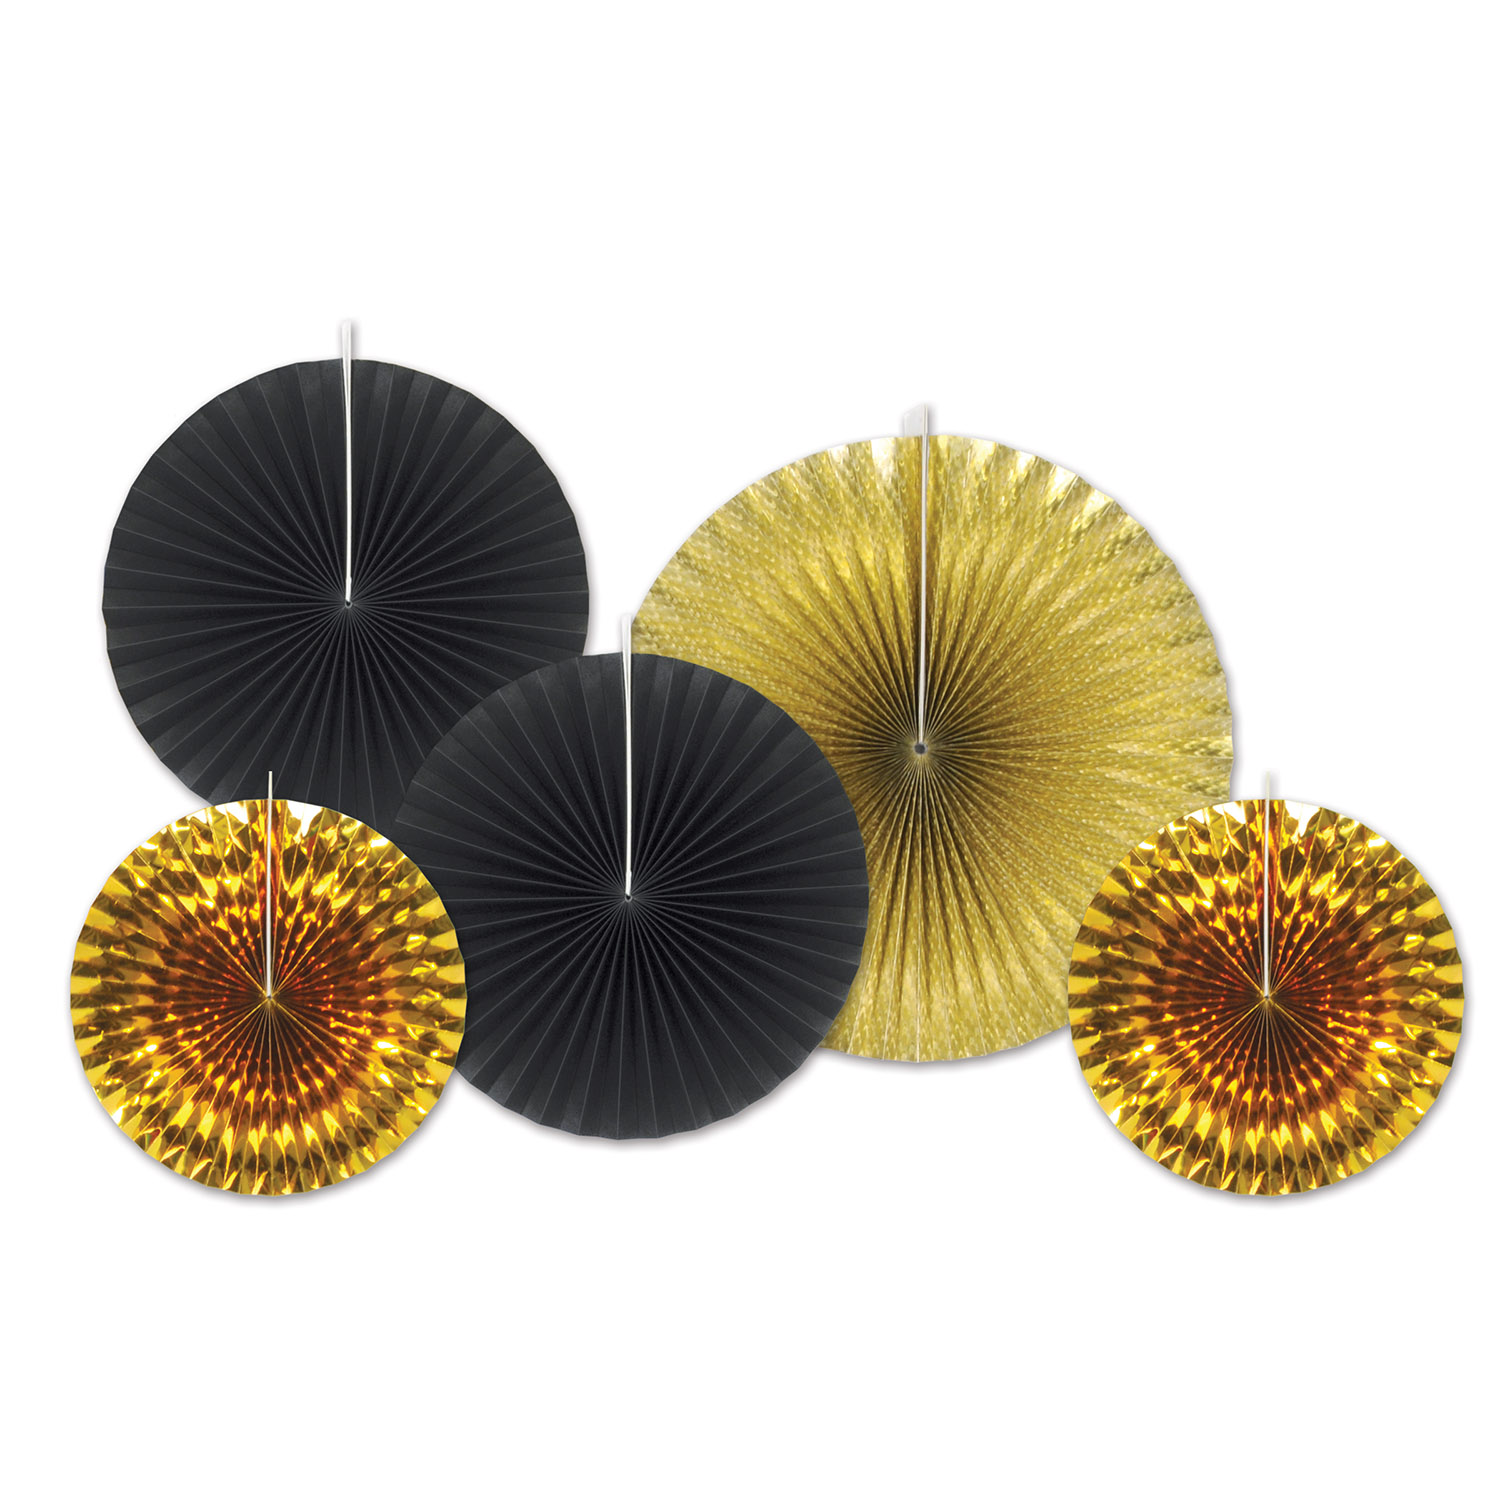 Assorted Paper & Foil Decorative Fans (Pack of 60) Decorative Fans, Paper Fans, Foil Fans, Black and Gold decor, Wholesale party supplies, Inexpensive decorations, New Years Eve, Party Supplies